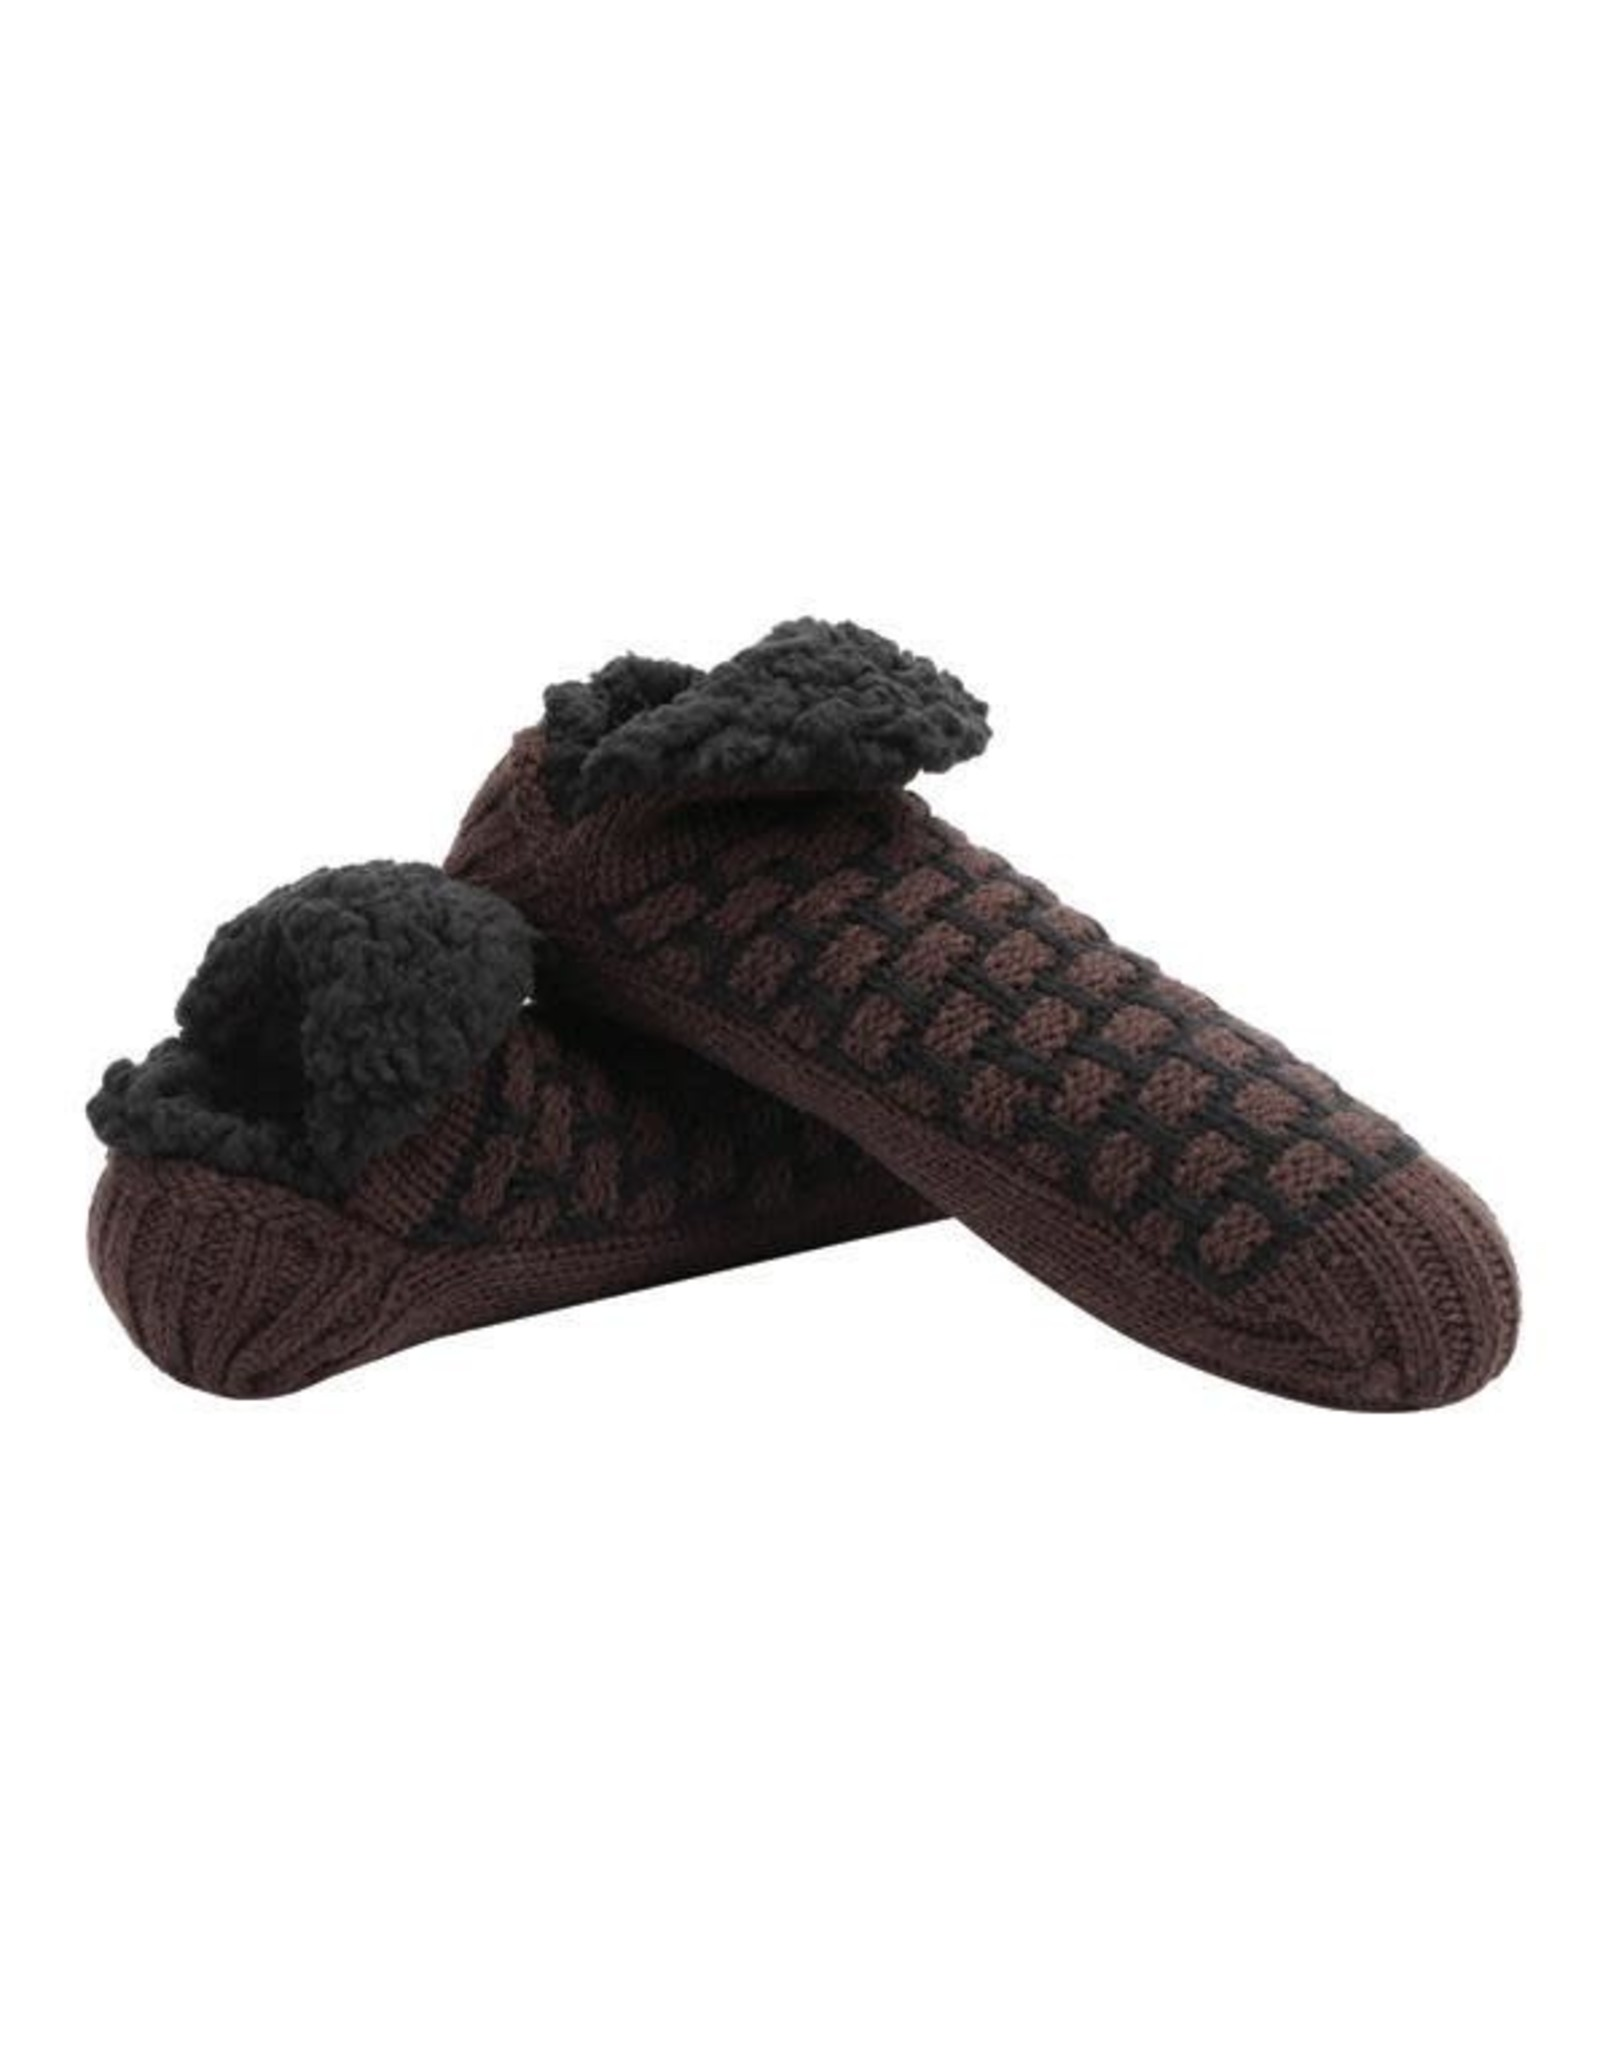 Snoozies Men's Waffle Micro Crew Snoozies